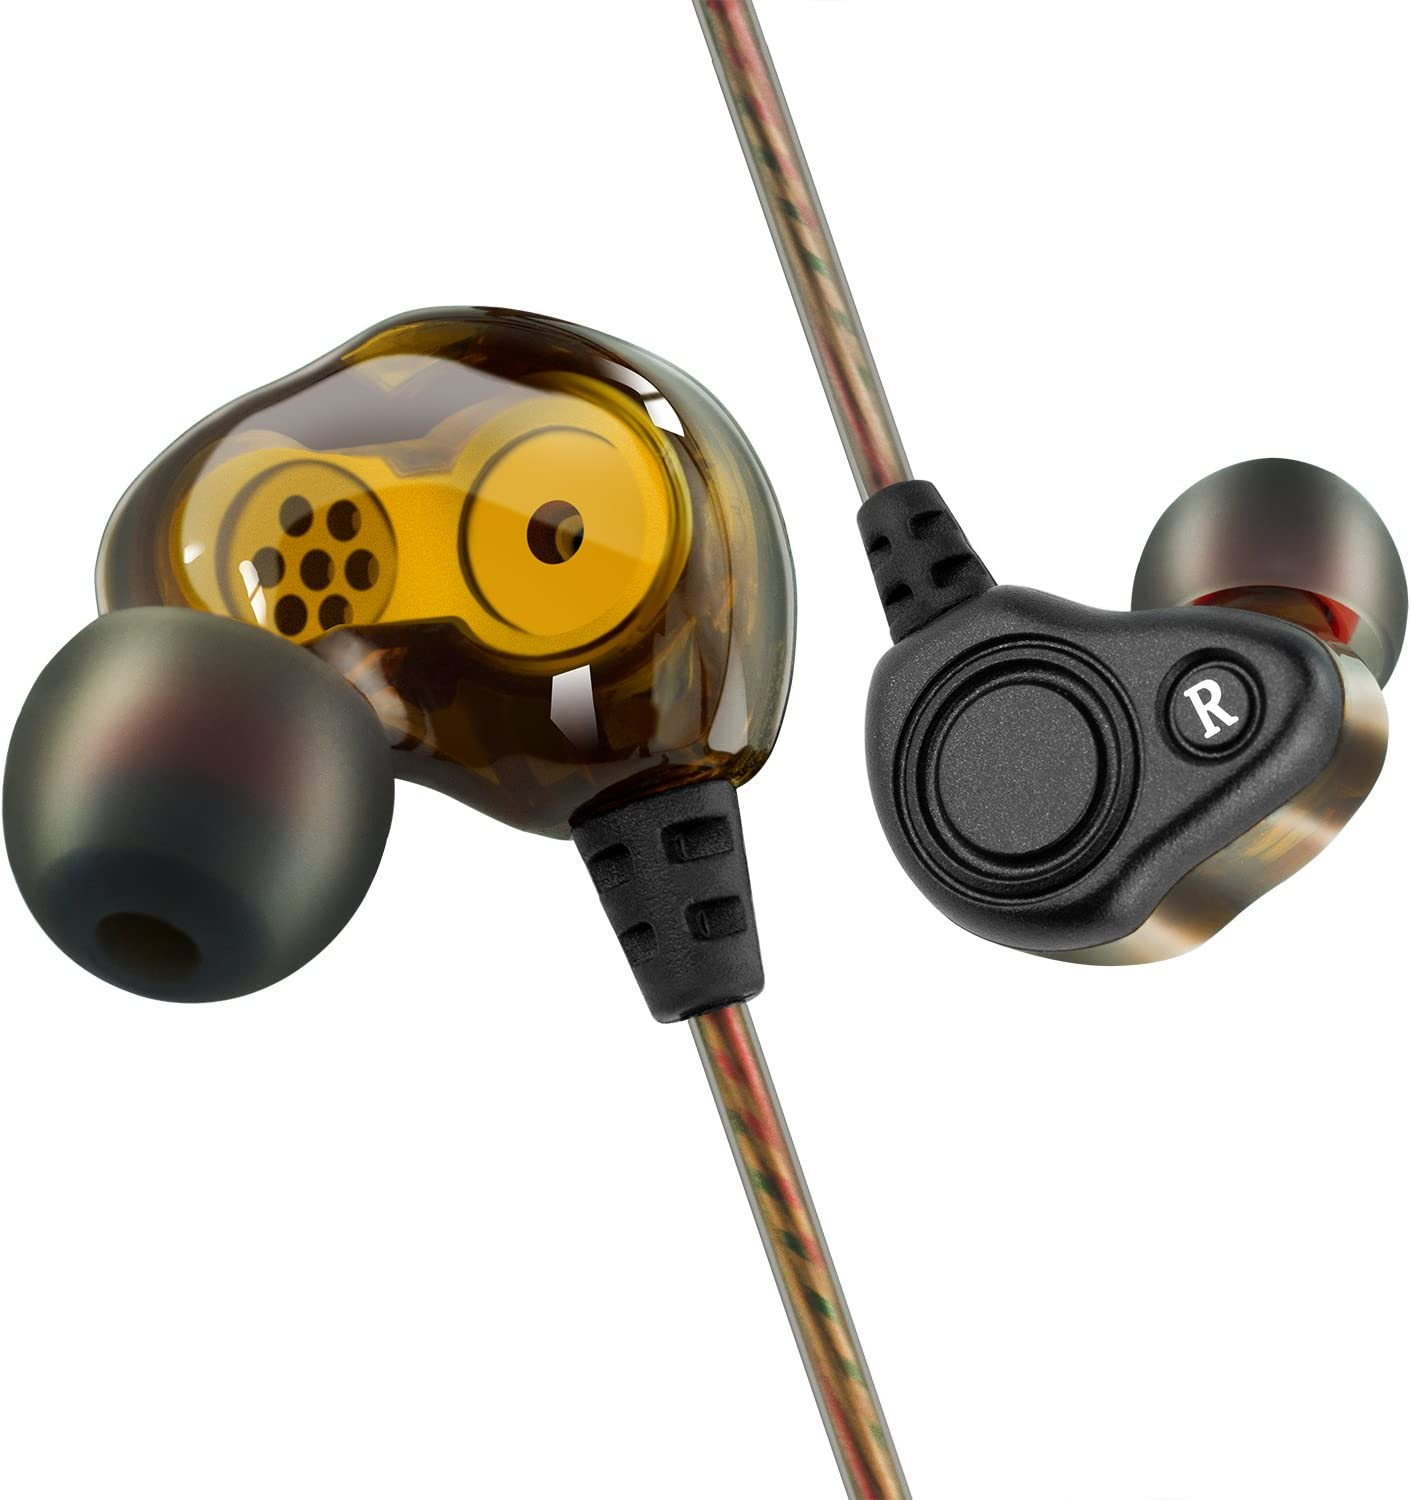 yellow and black BYGZB noise-cancelling earbuds on a white background